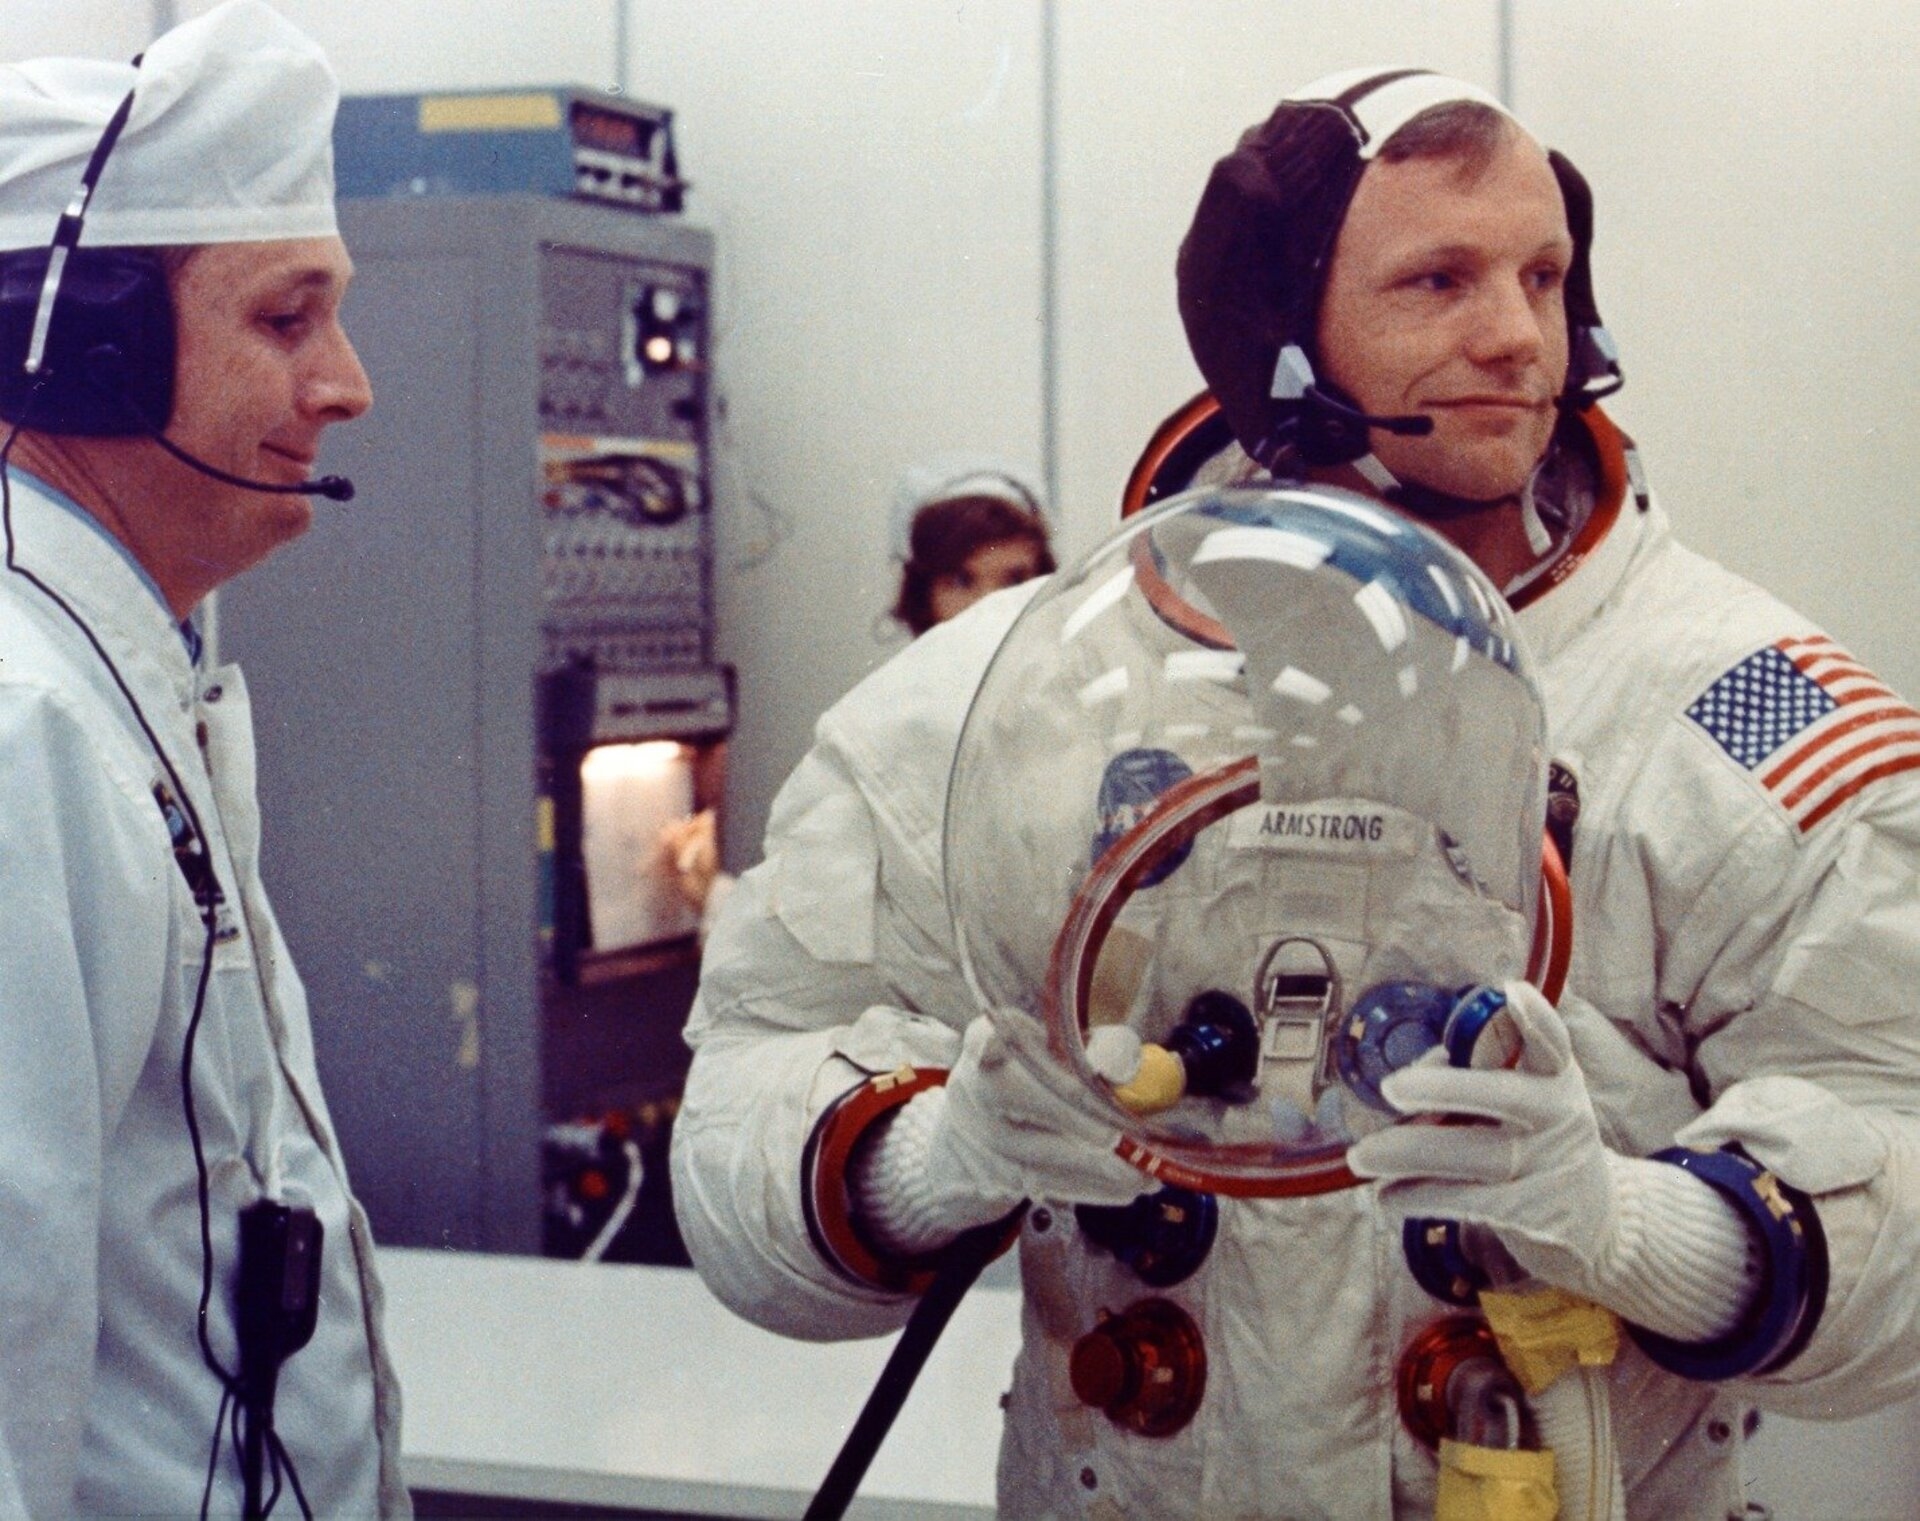 Armstrong suiting up